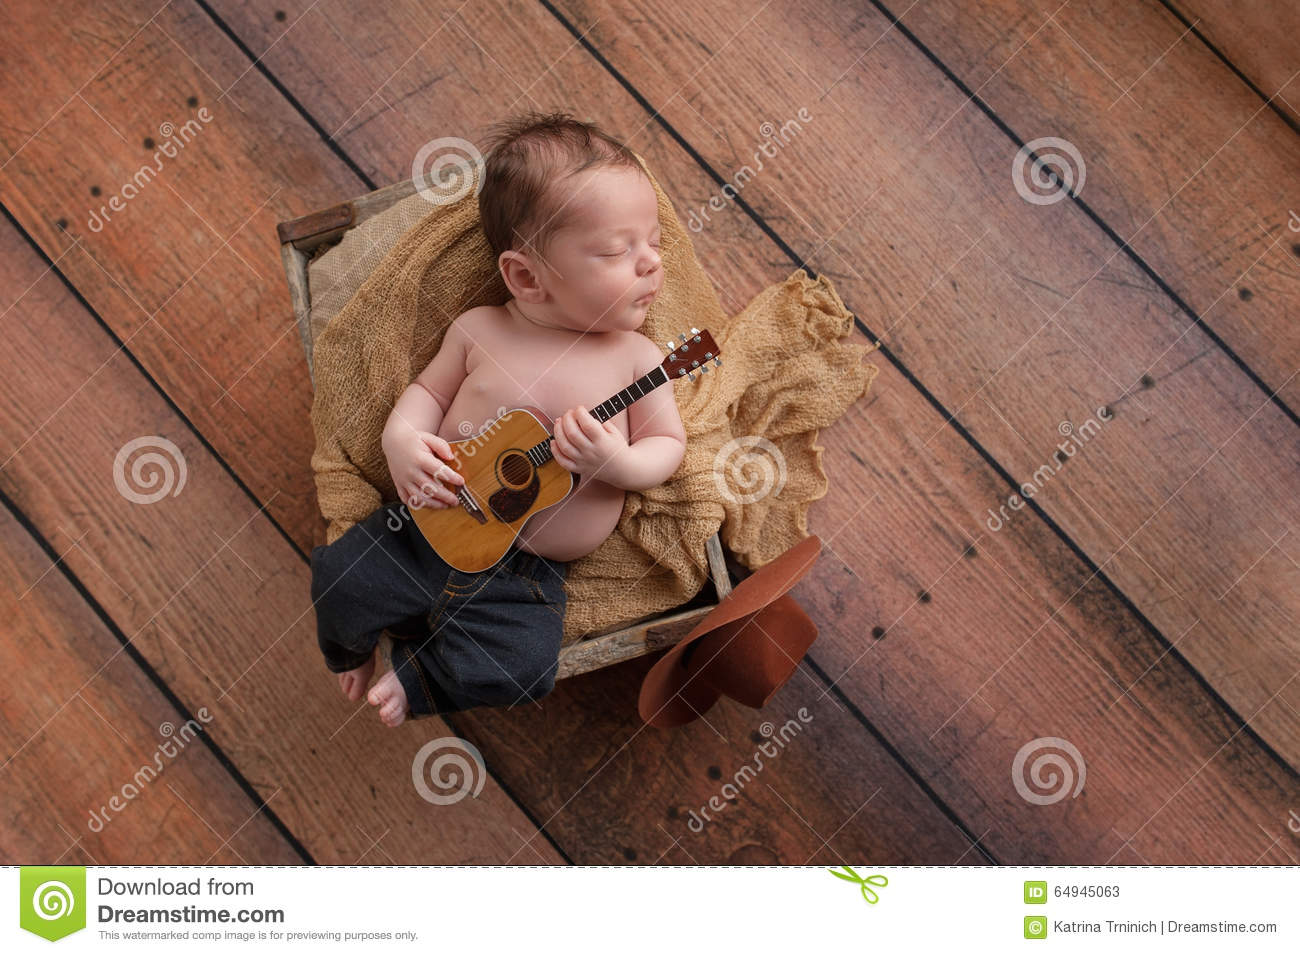 Newborn Baby Boy Playing A Tiny Guitar Stock Image - Image